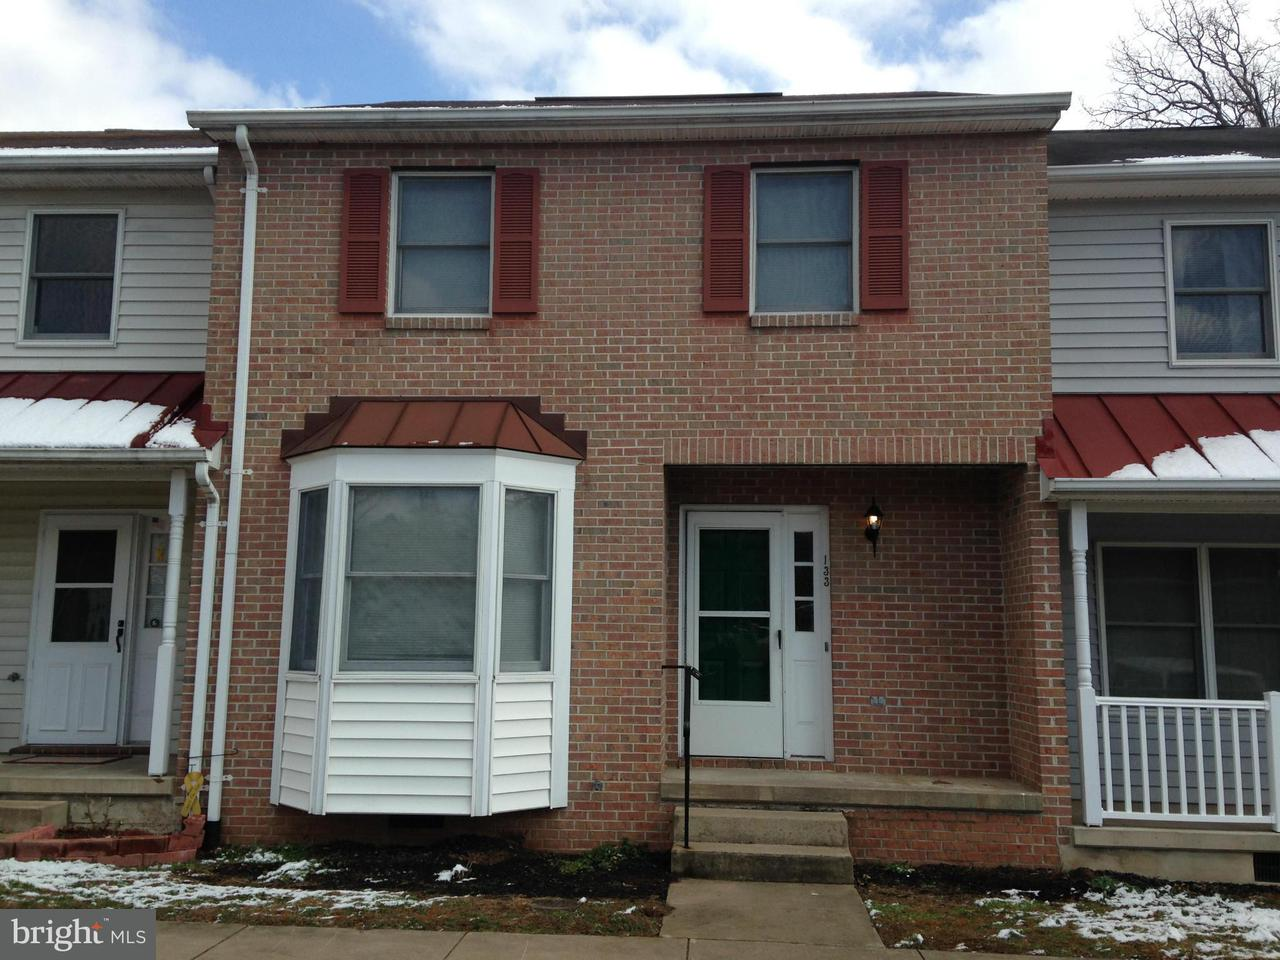 Other Residential for Rent at 133 Wankoma Dr Remington, Virginia 22734 United States